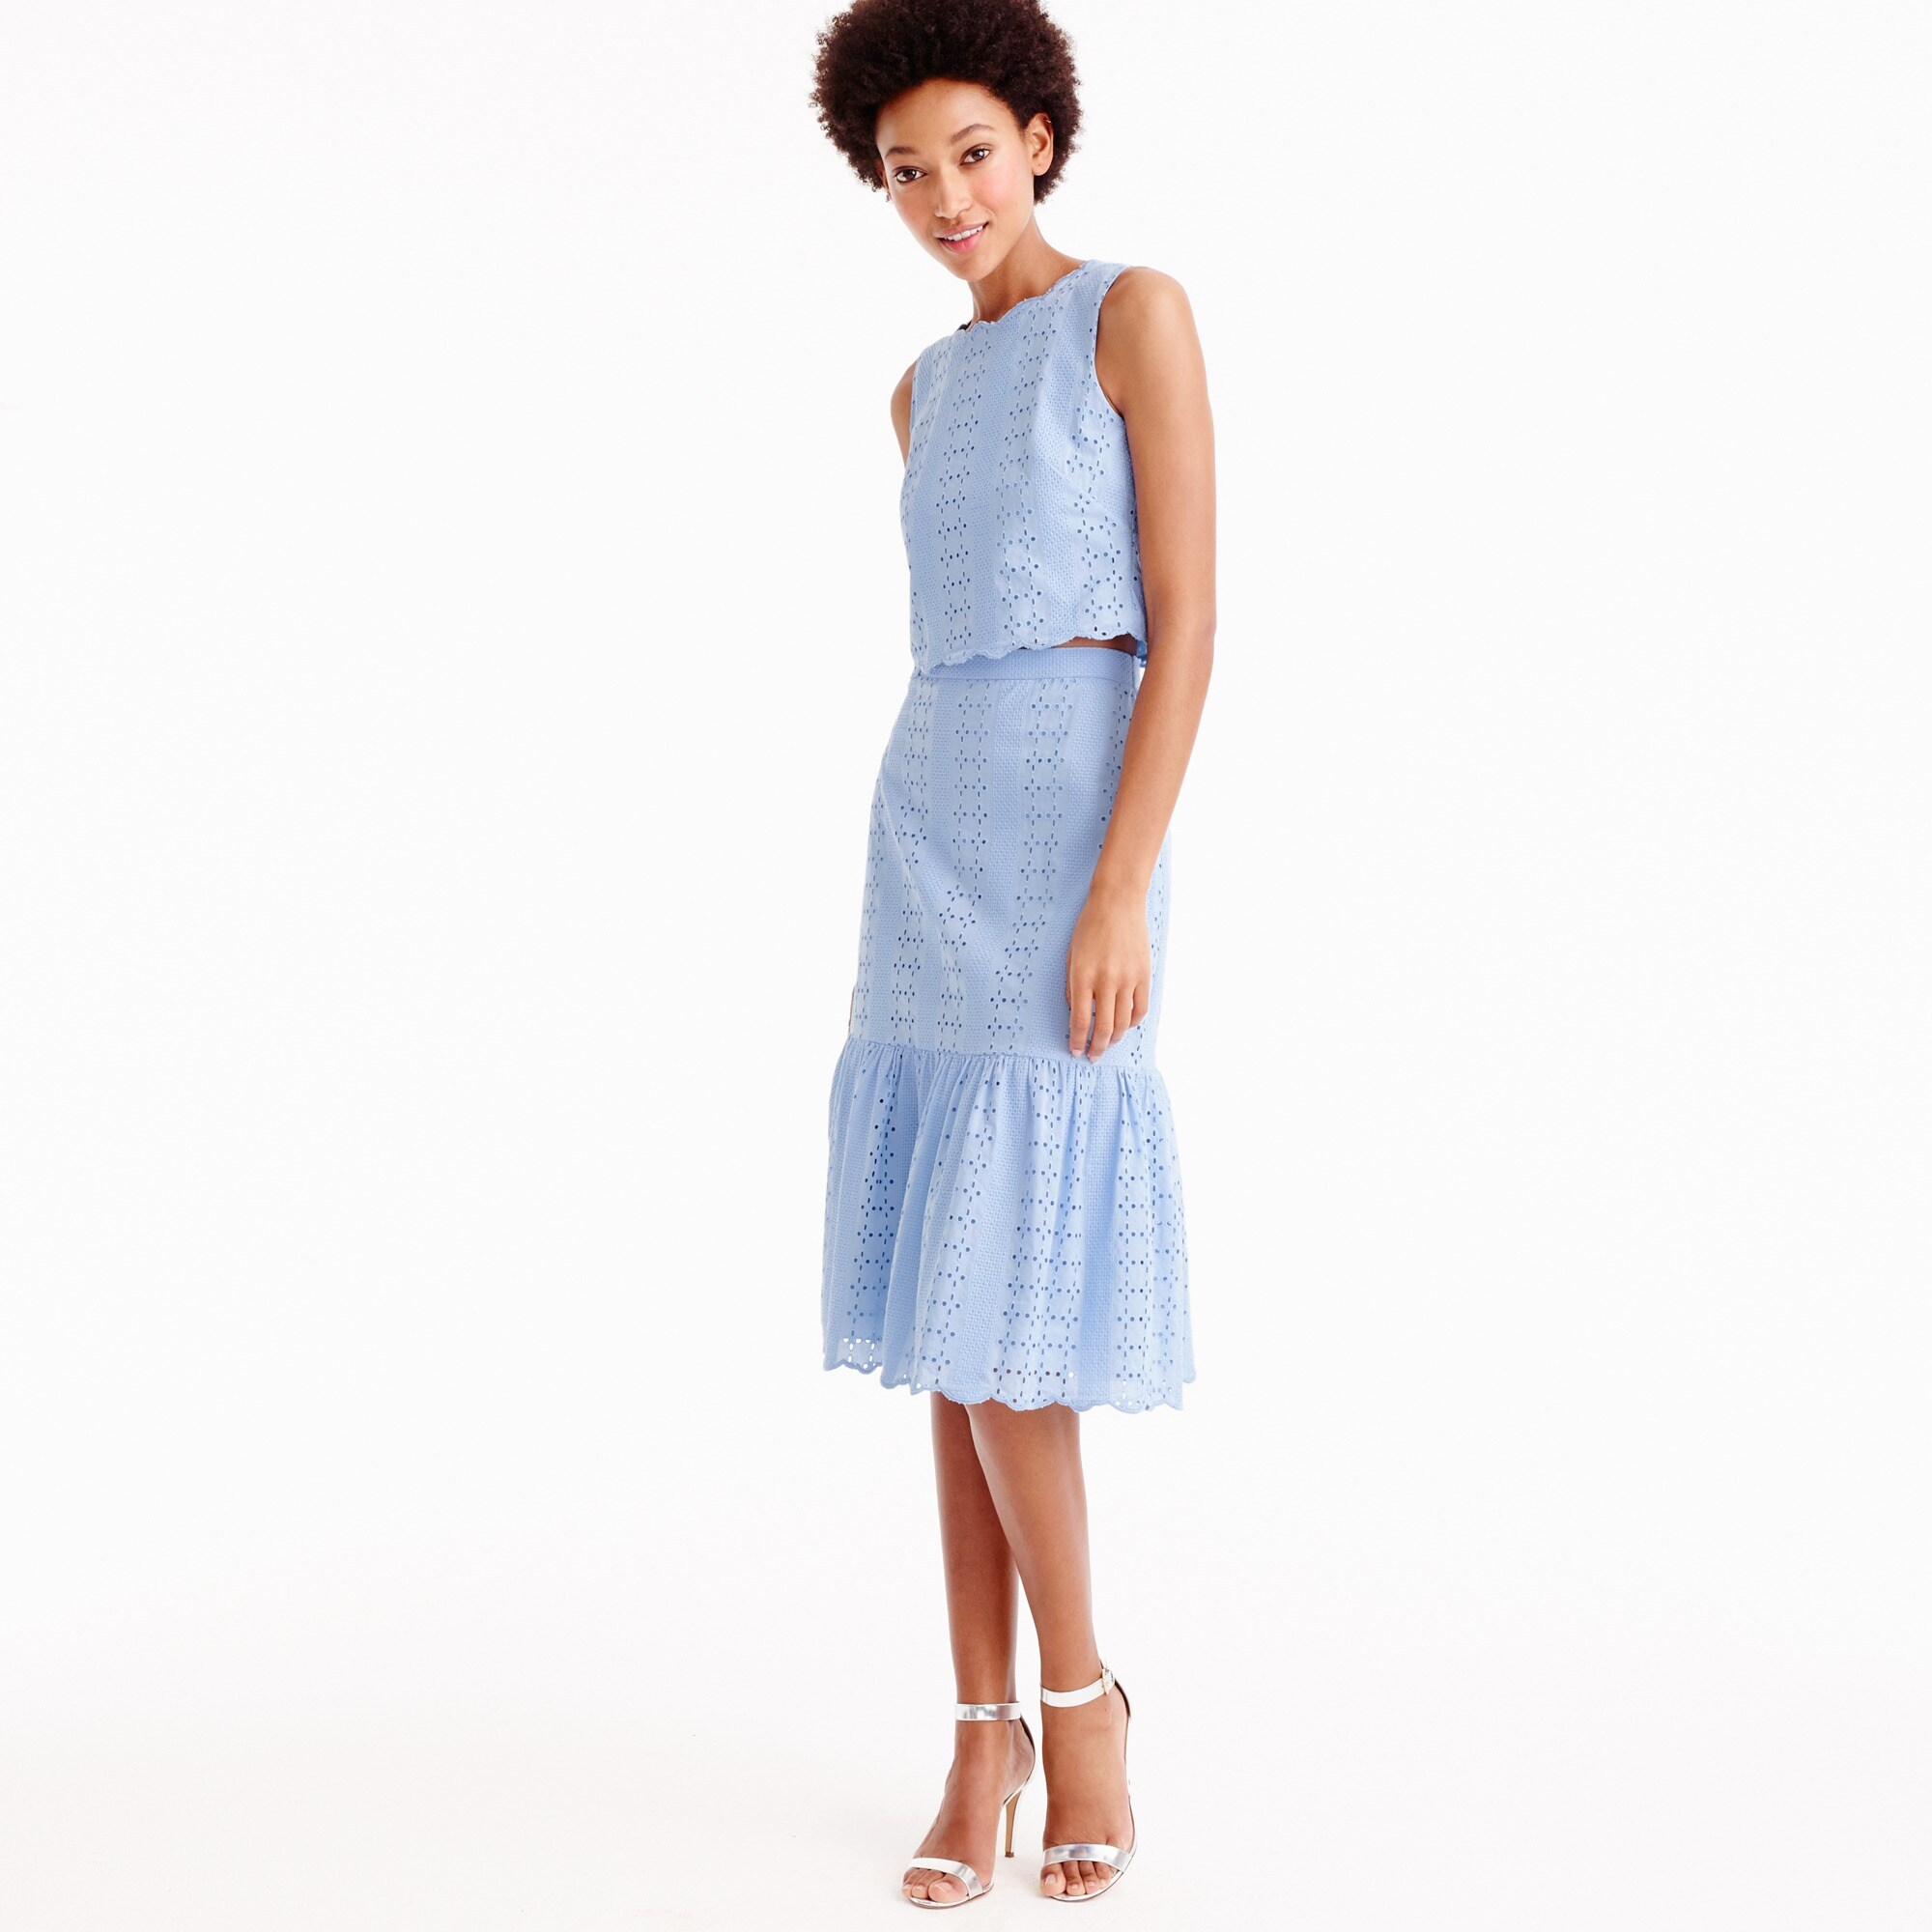 tiered scalloped skirt in eyelet : women ready-to-party collection